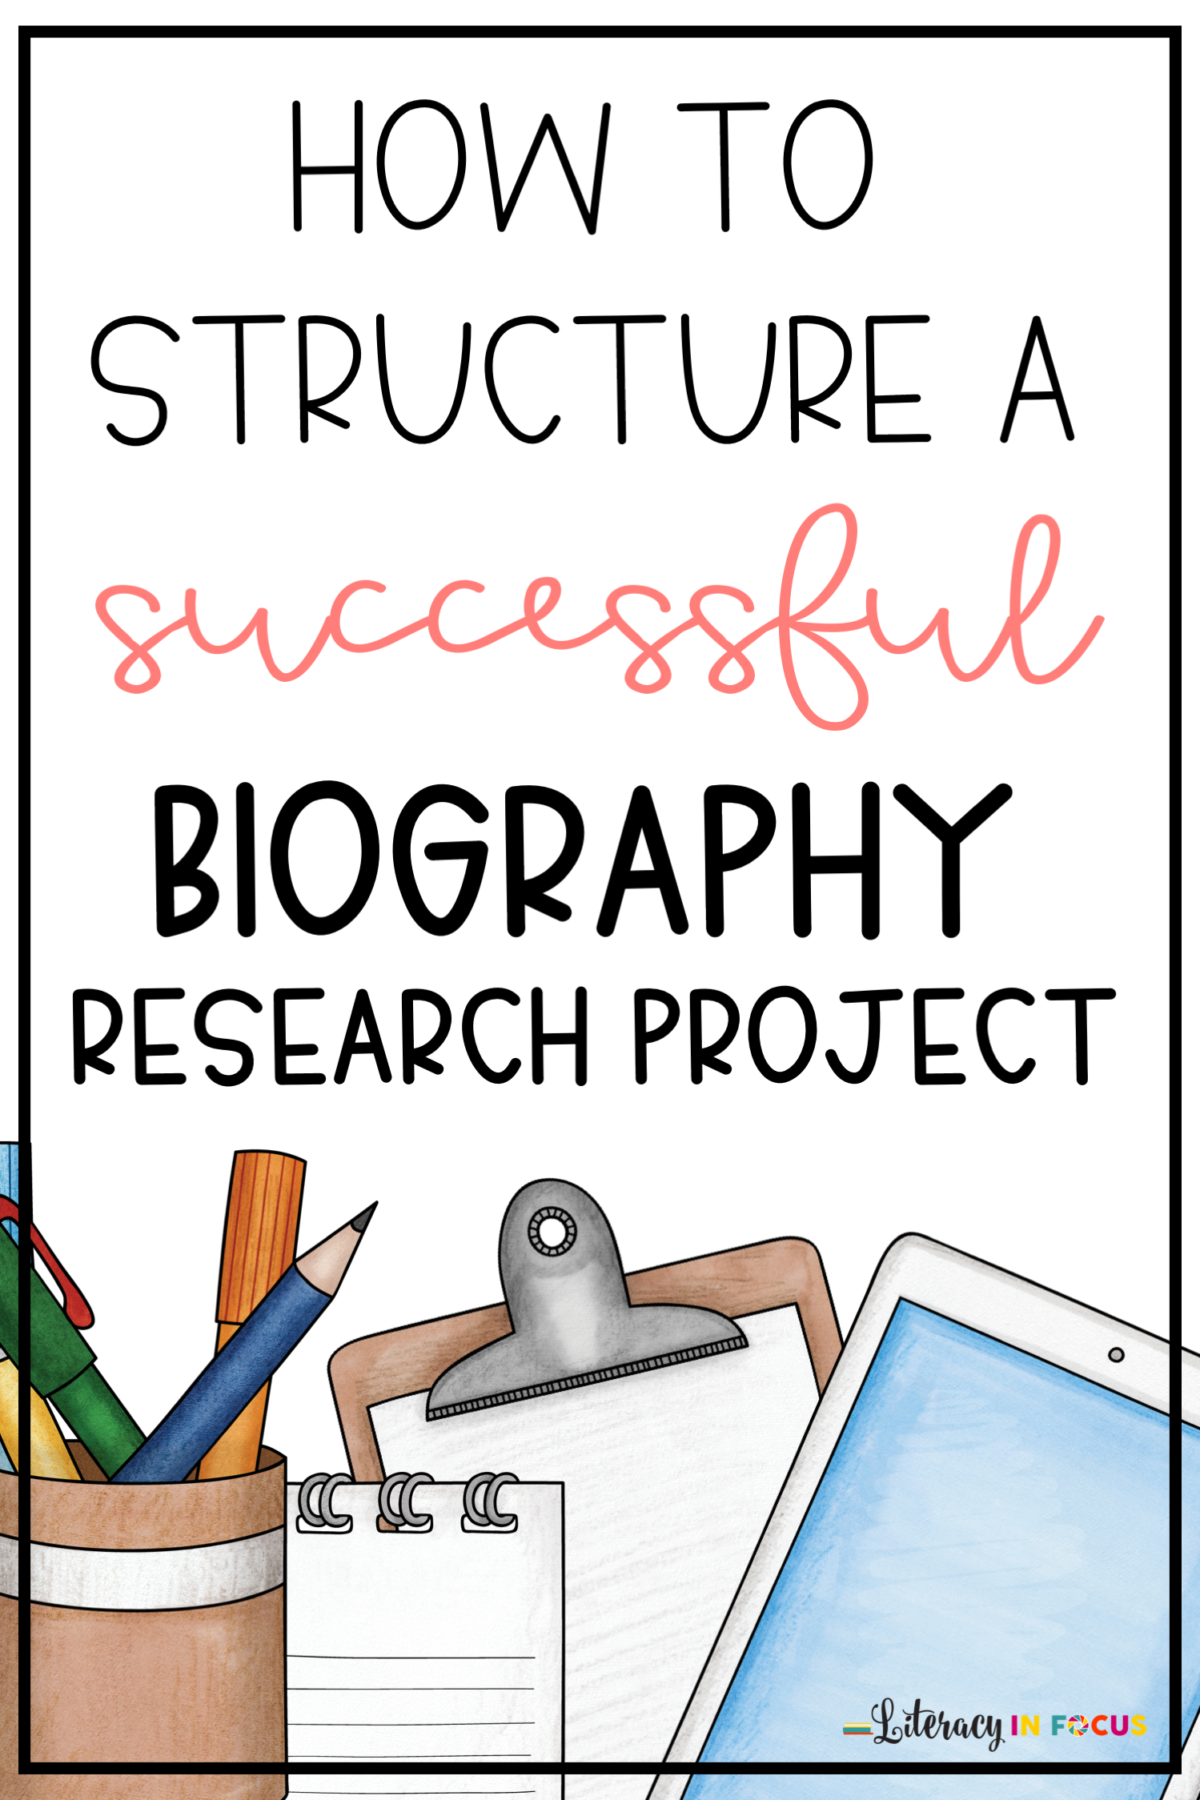 How To Structure A Successful Biography Research Project